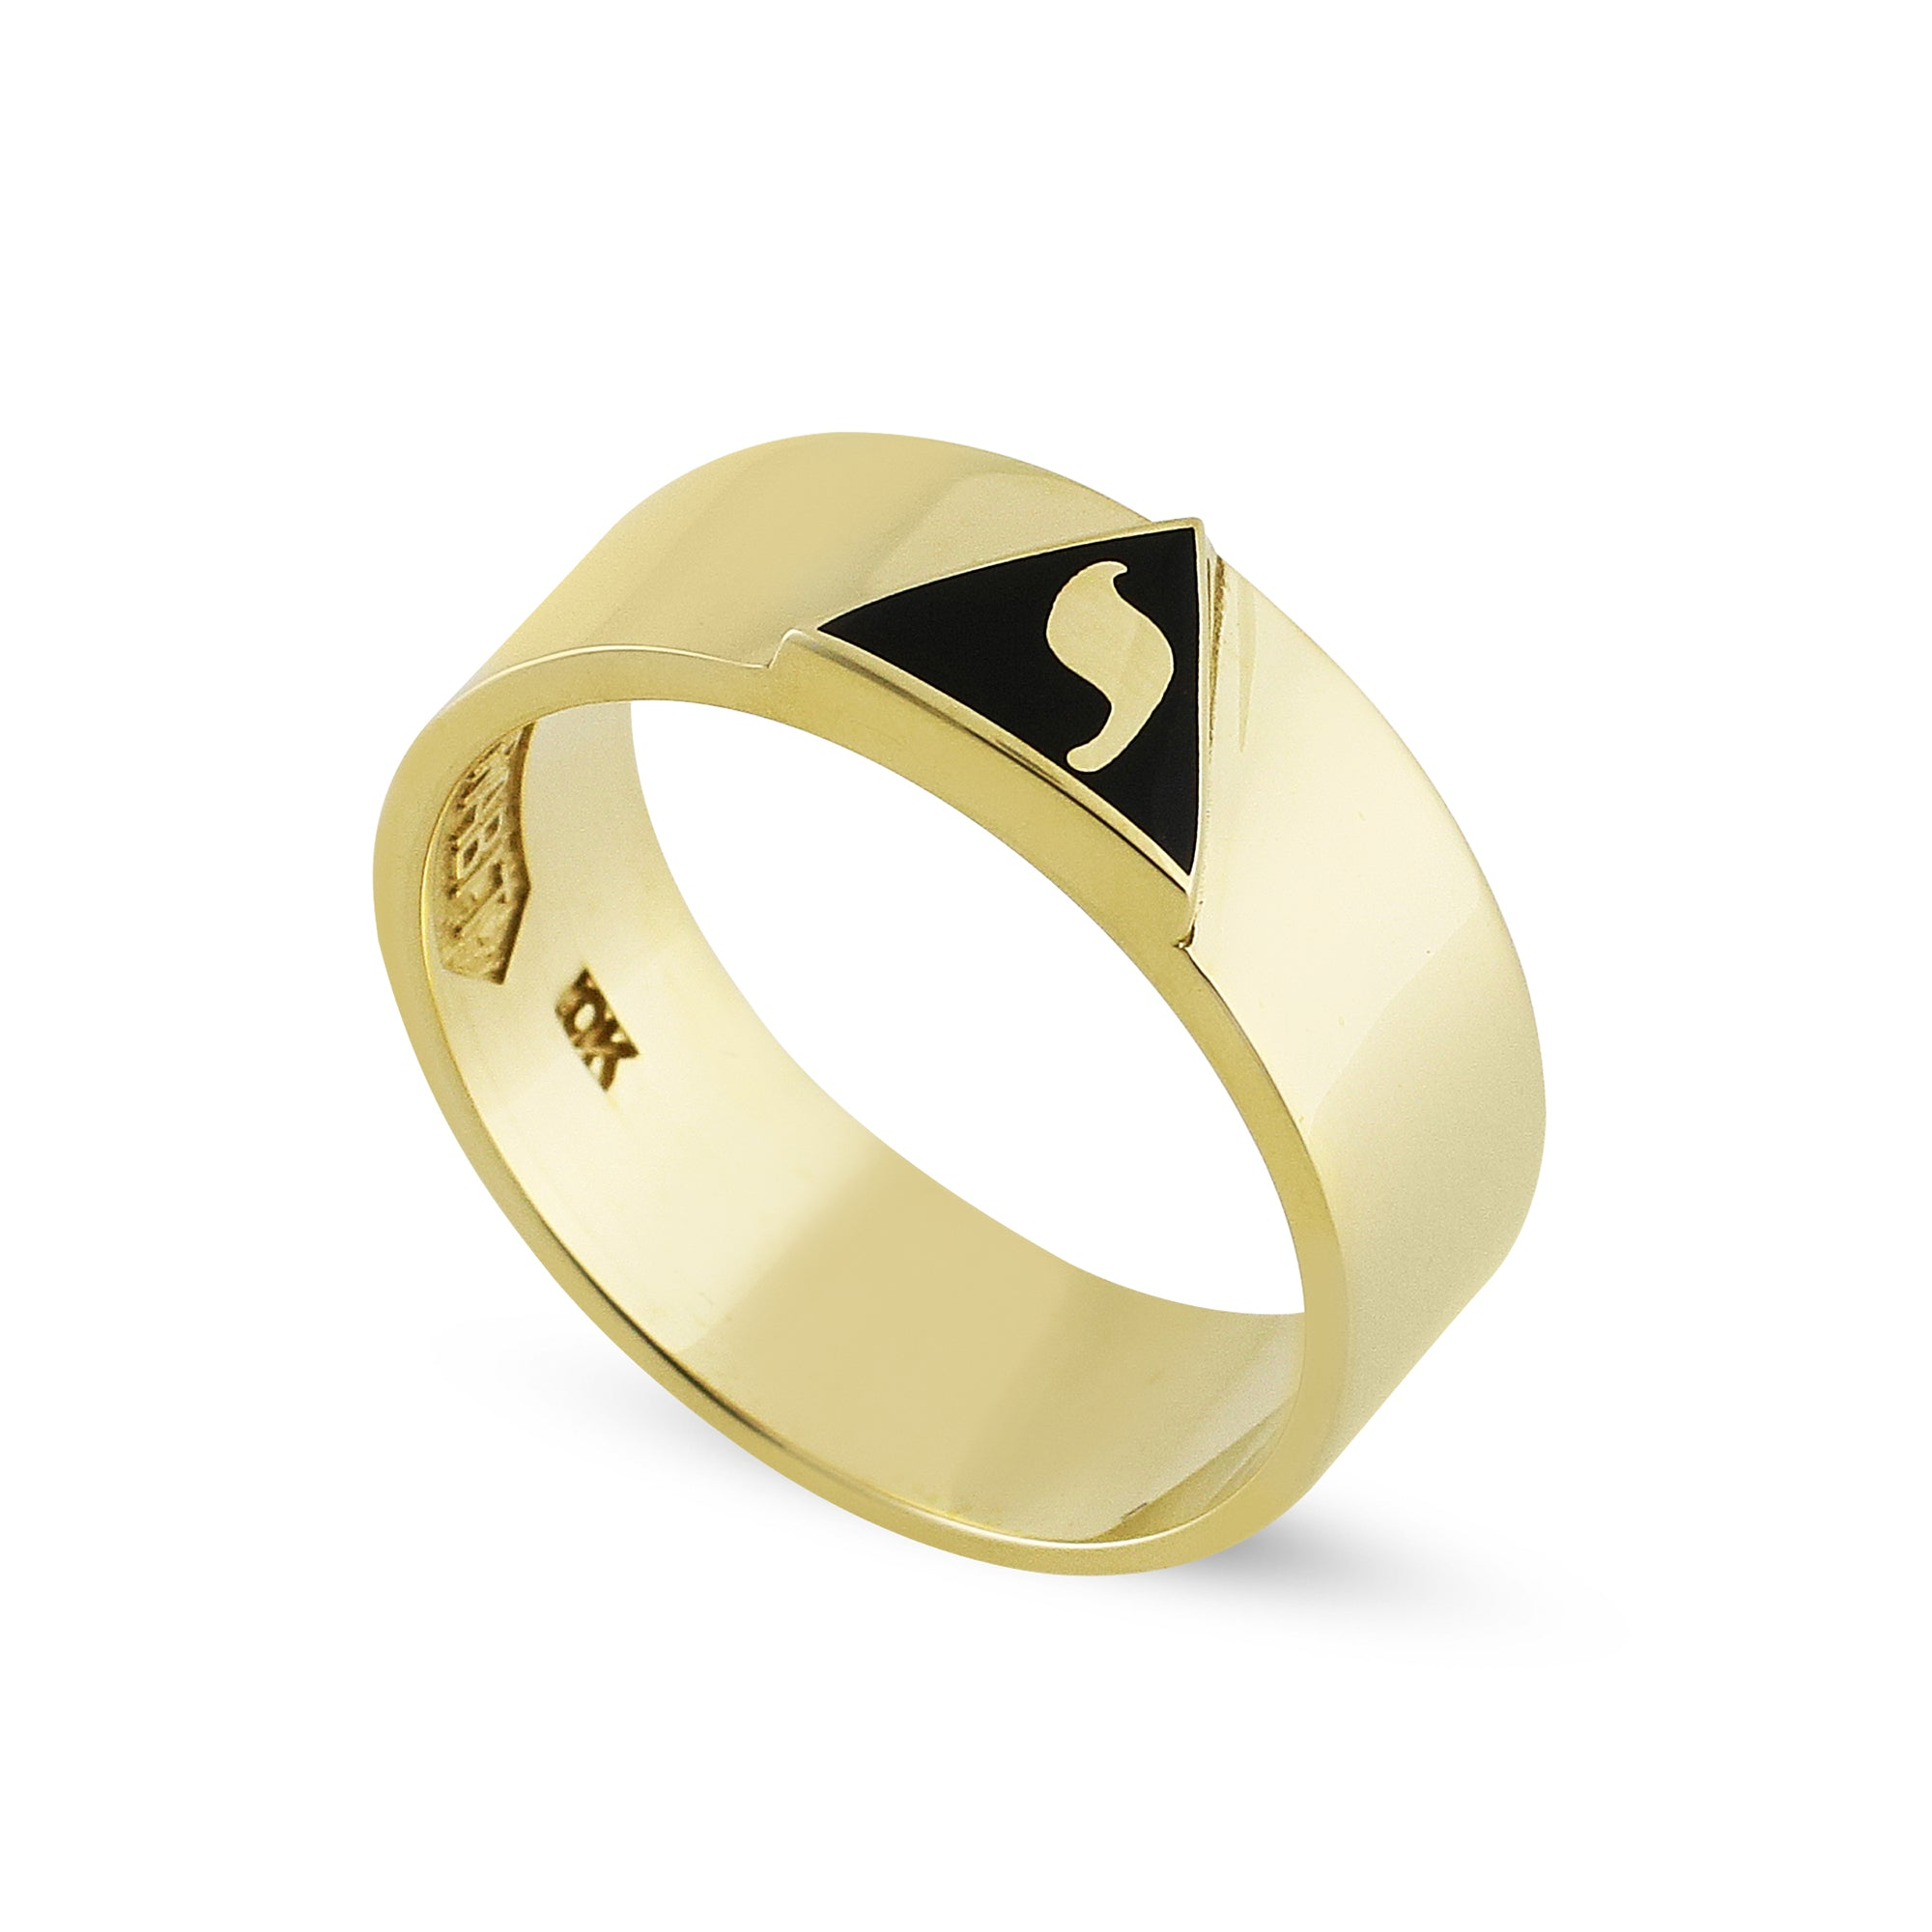 14th Degree Raised Emblem Ring